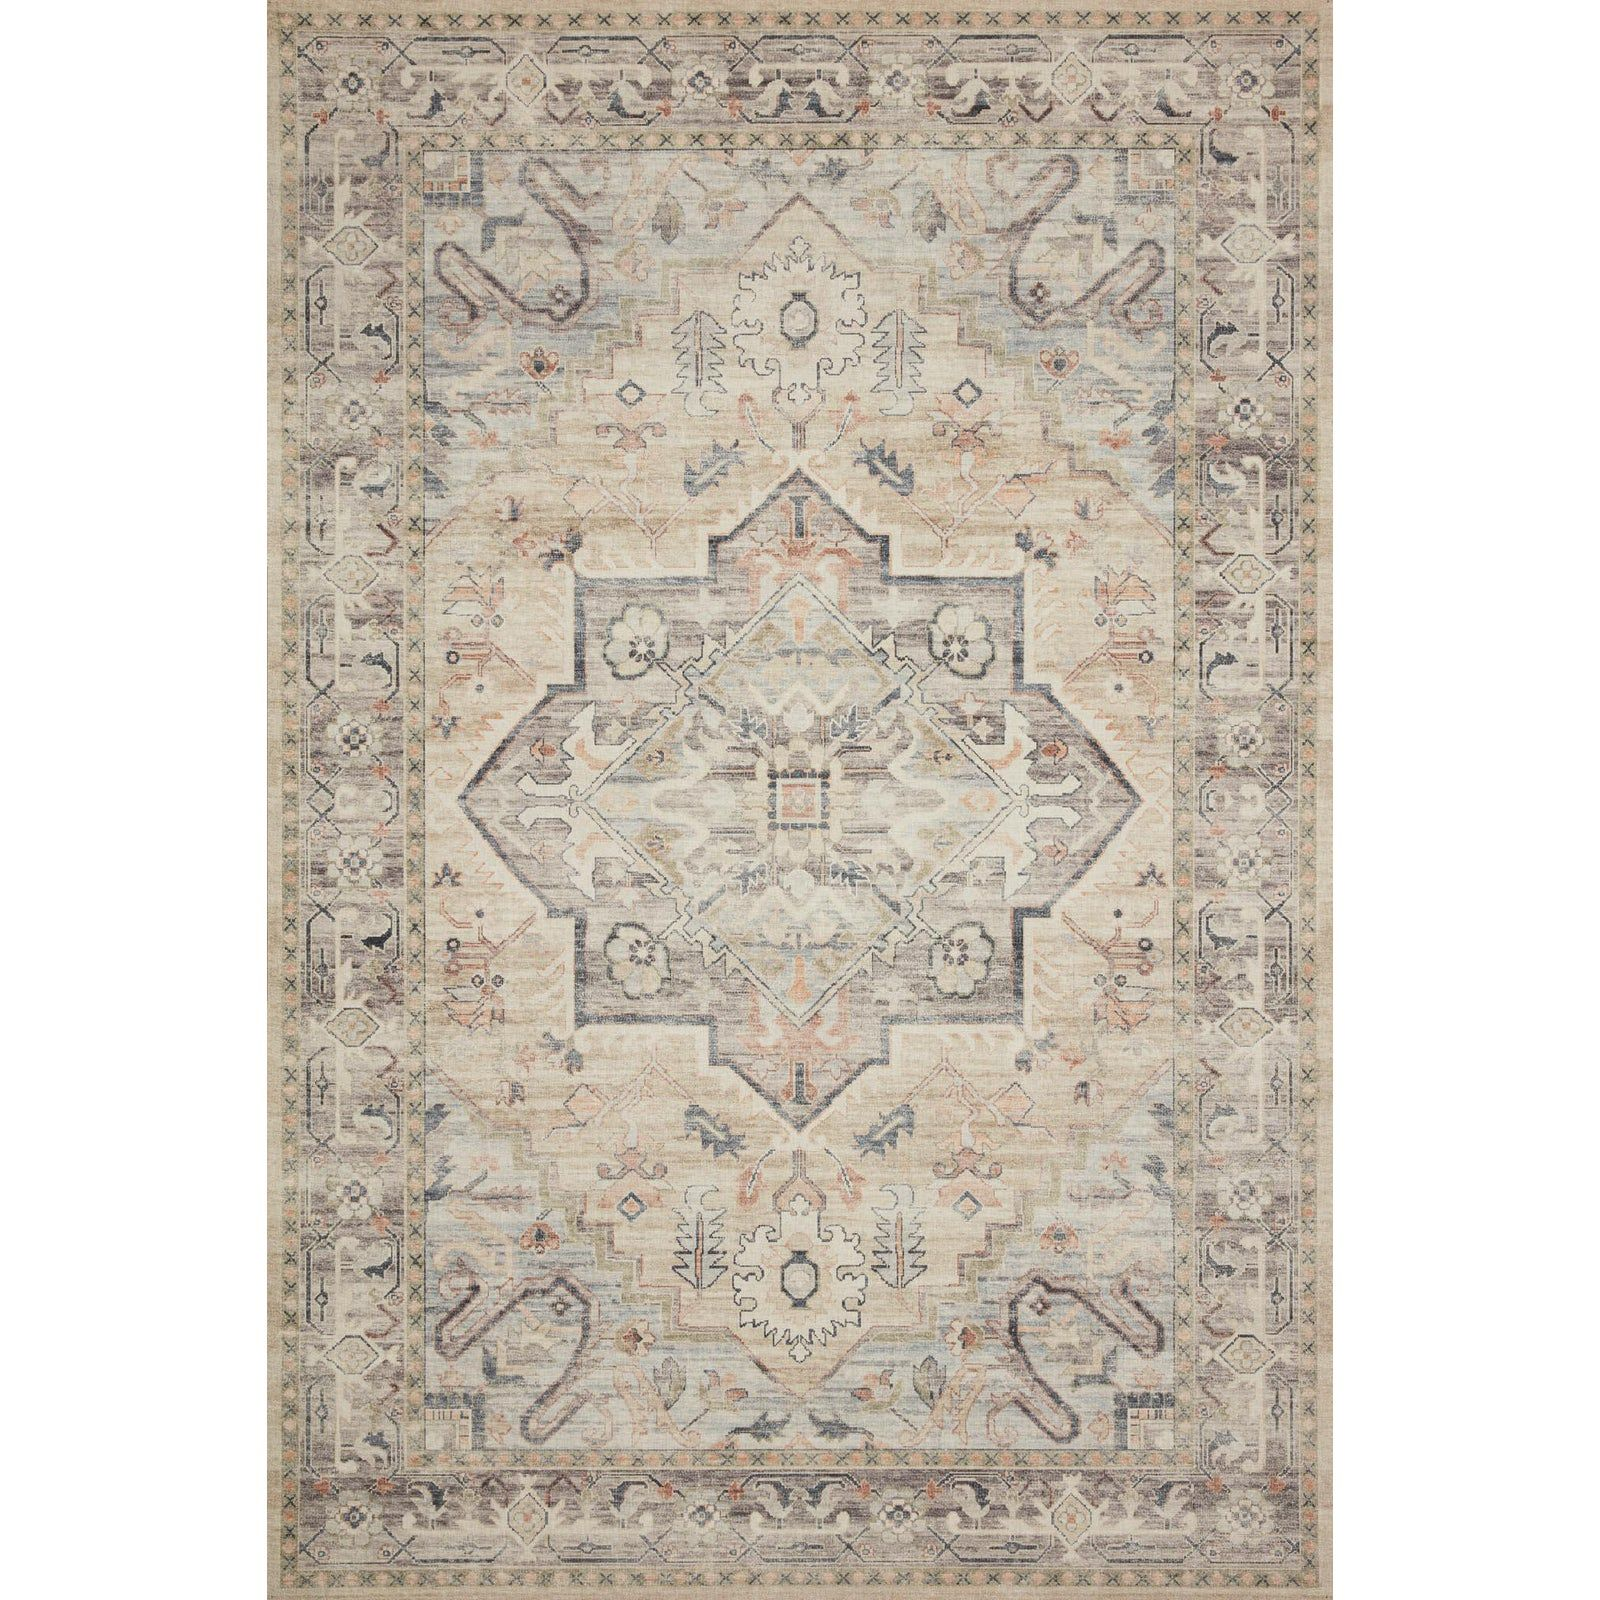 Loloi Rugs Hathaway Multi Ivory 5 0 X 7 6 Area Rug Colorful Rugs Ivory Rug Distressed Rugs